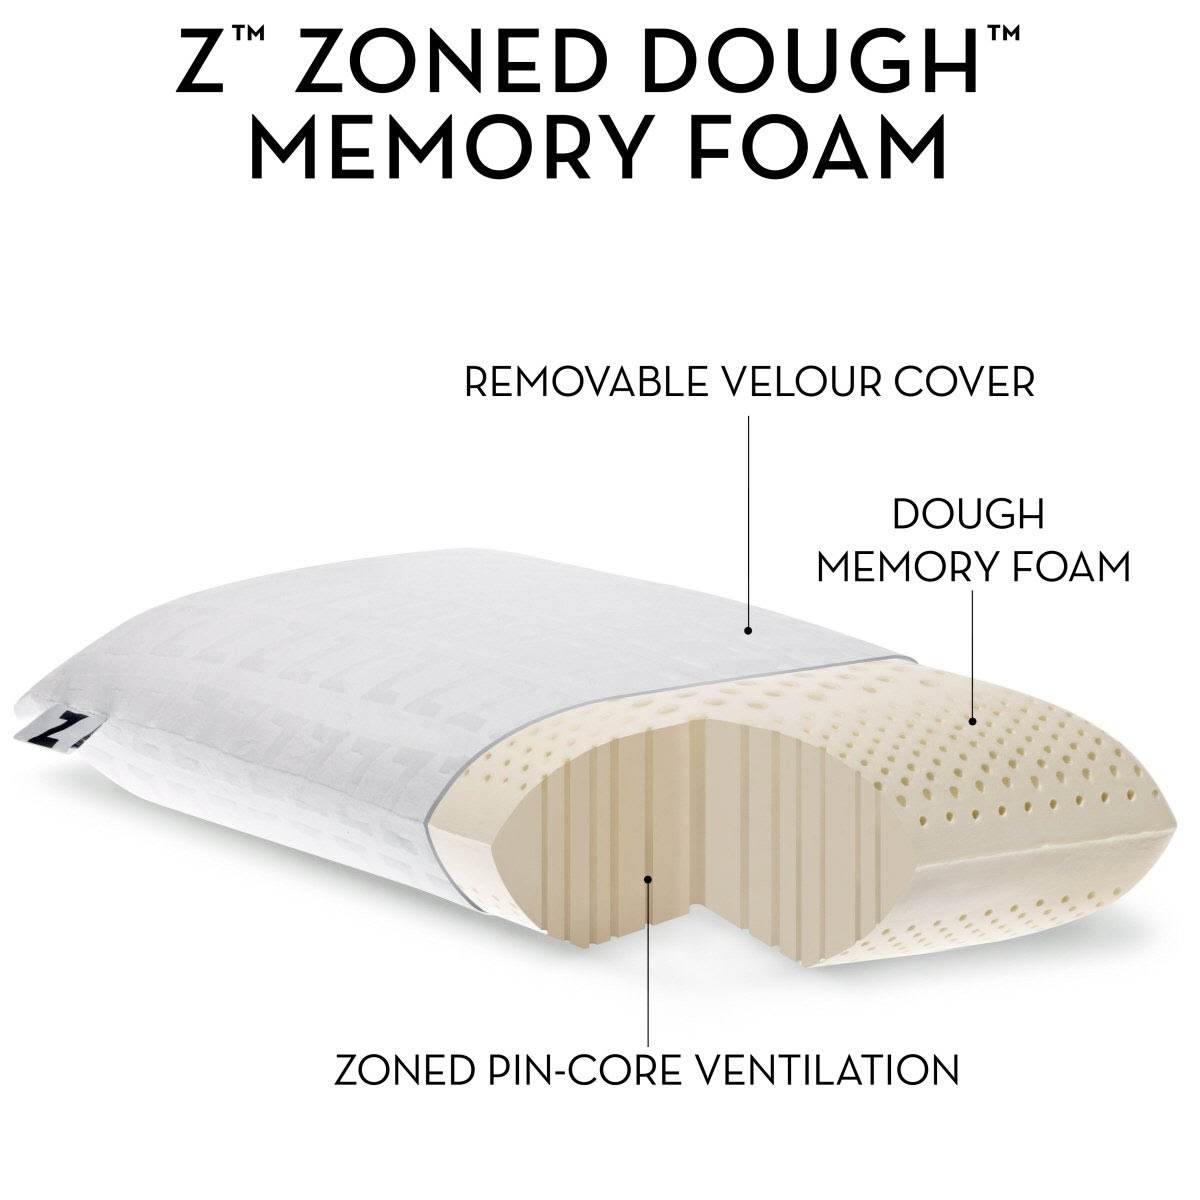 My Malouf Zoned Dough Memory Foam Pillow Review | Geeky Weekly